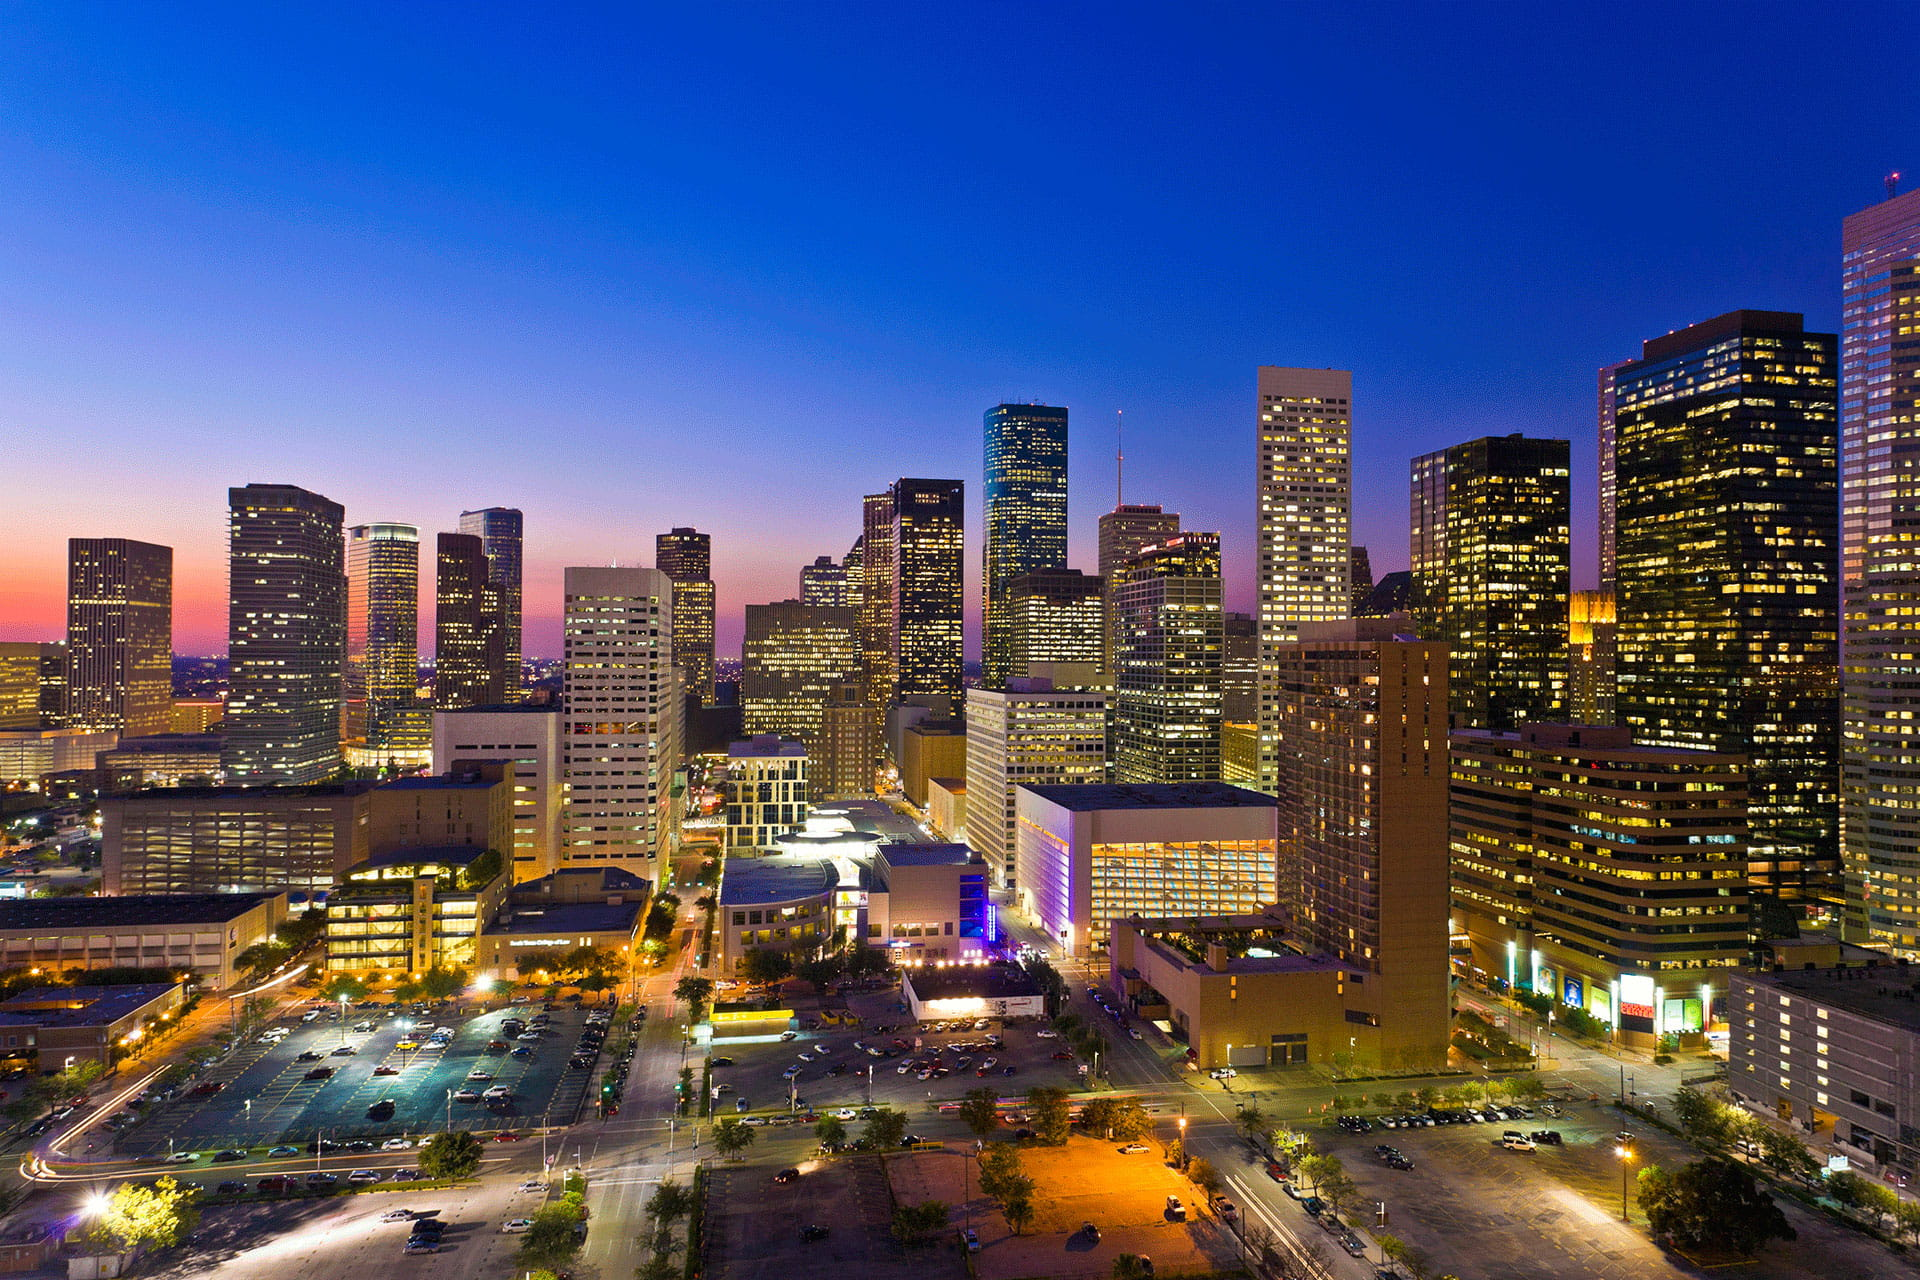 Aerial view of Houston Skyline at Night